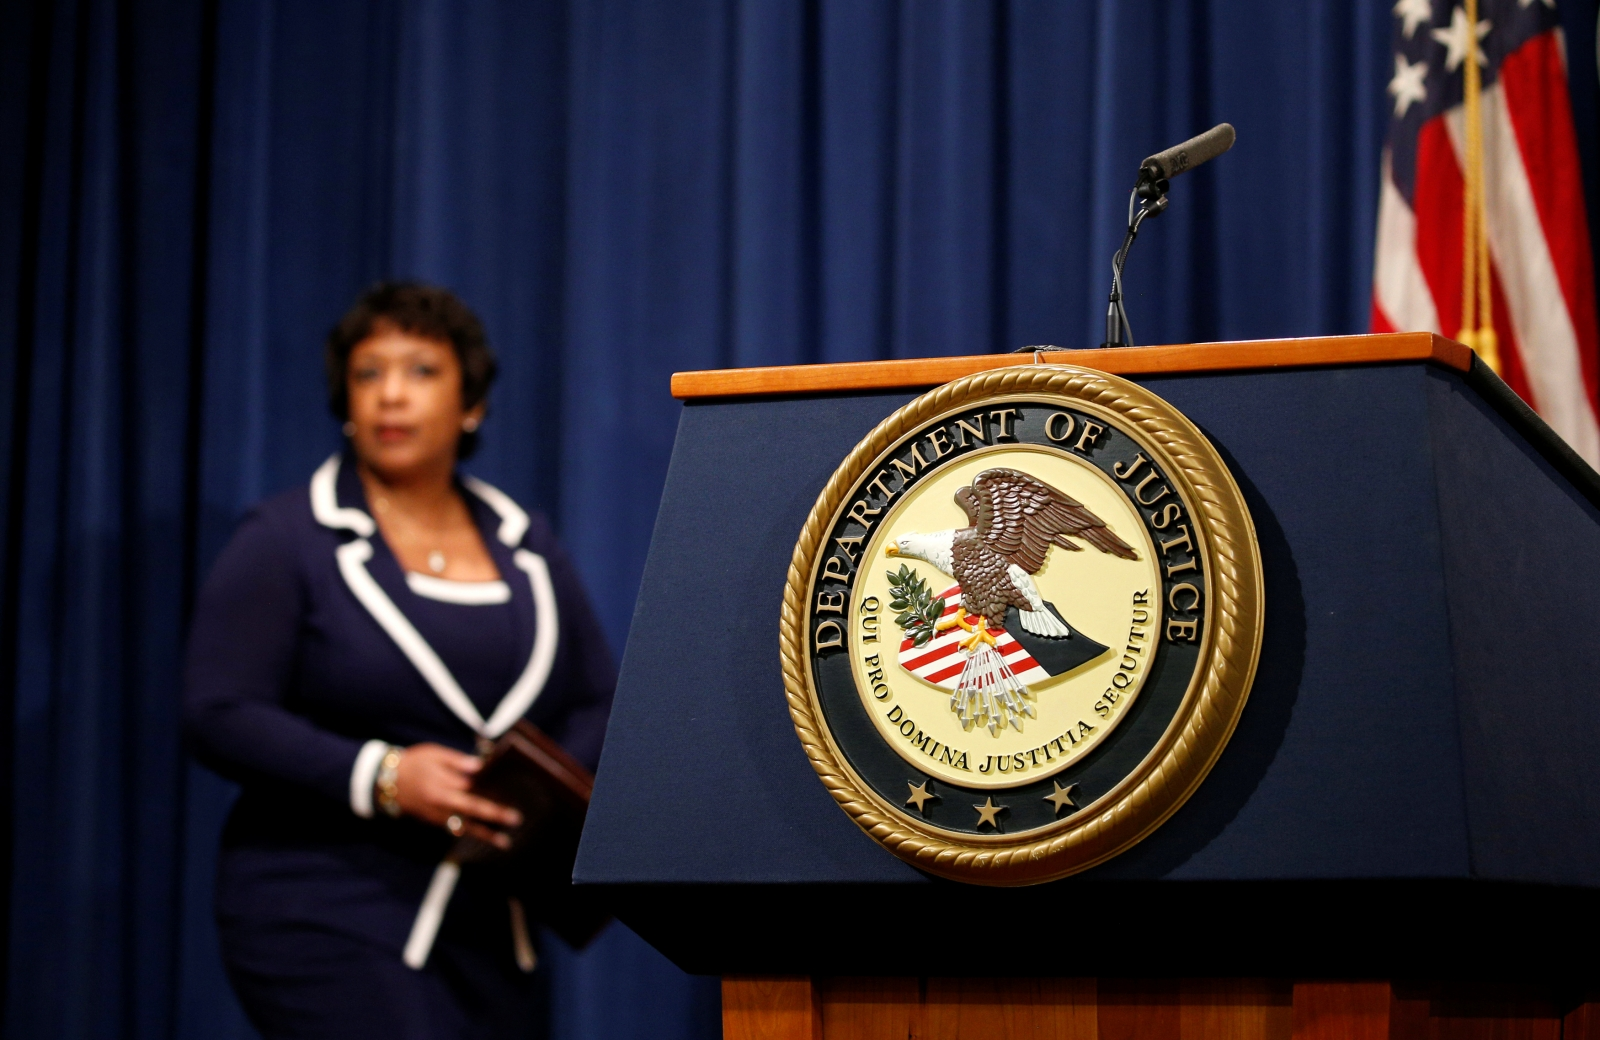 Shire Pharmaceuticals to pay $350m to settle federal and state False Claims Act allegations, US DoJ says